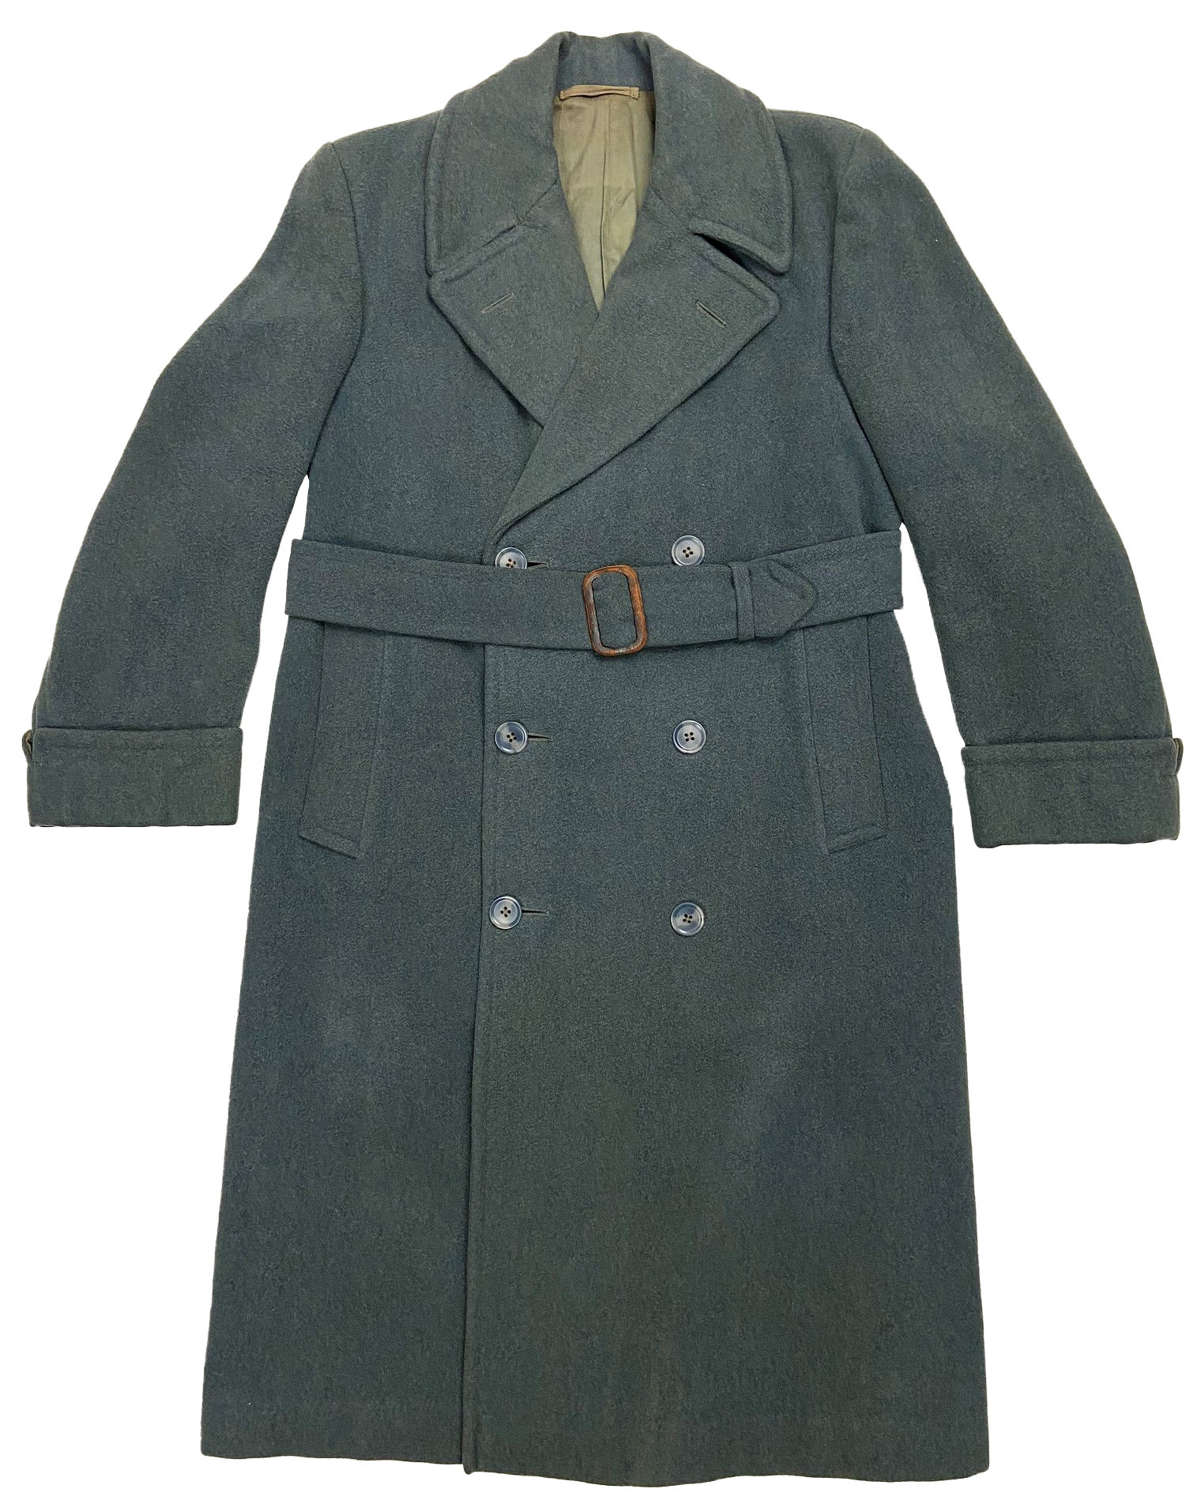 Original 1940s Teal Coloured Men's Overcoat by 'Redmayne'